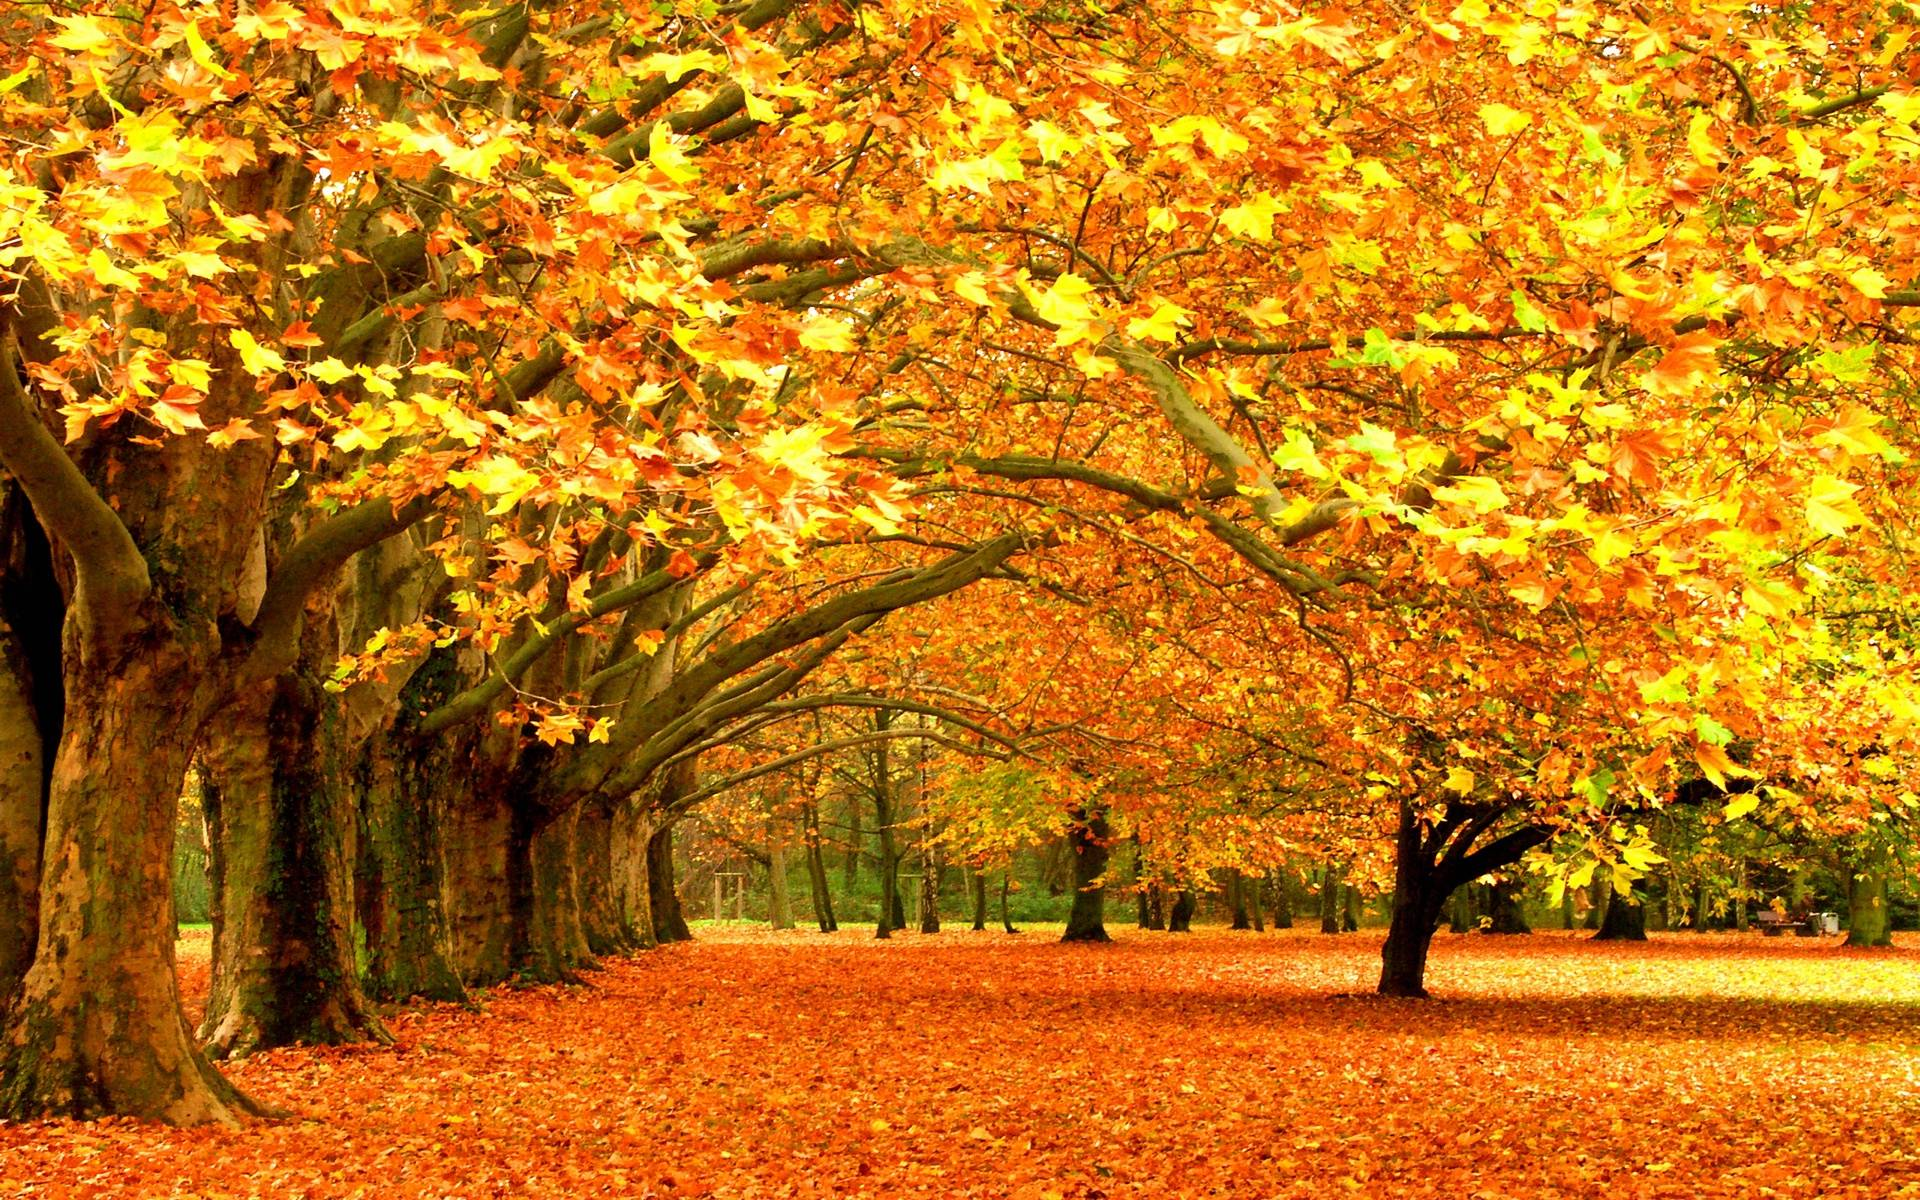 fall themed desktop backgrounds 003